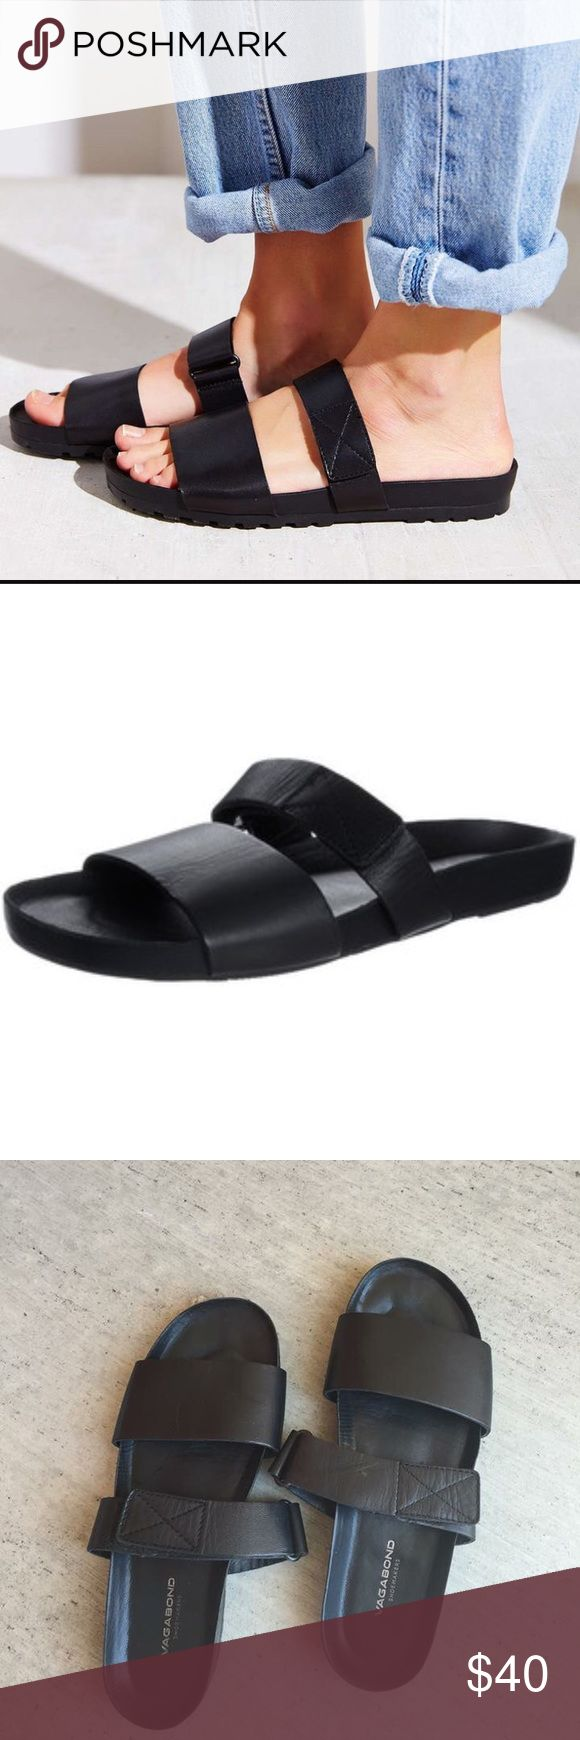 Vagabond Slide Sandals (Black) Vagabond slide sandals. SO cute but I have another pair of shoes that are basically the same as these. Velcro adjustable straps. Black. Only worn 3 times. Vagabond  Shoes Sandals